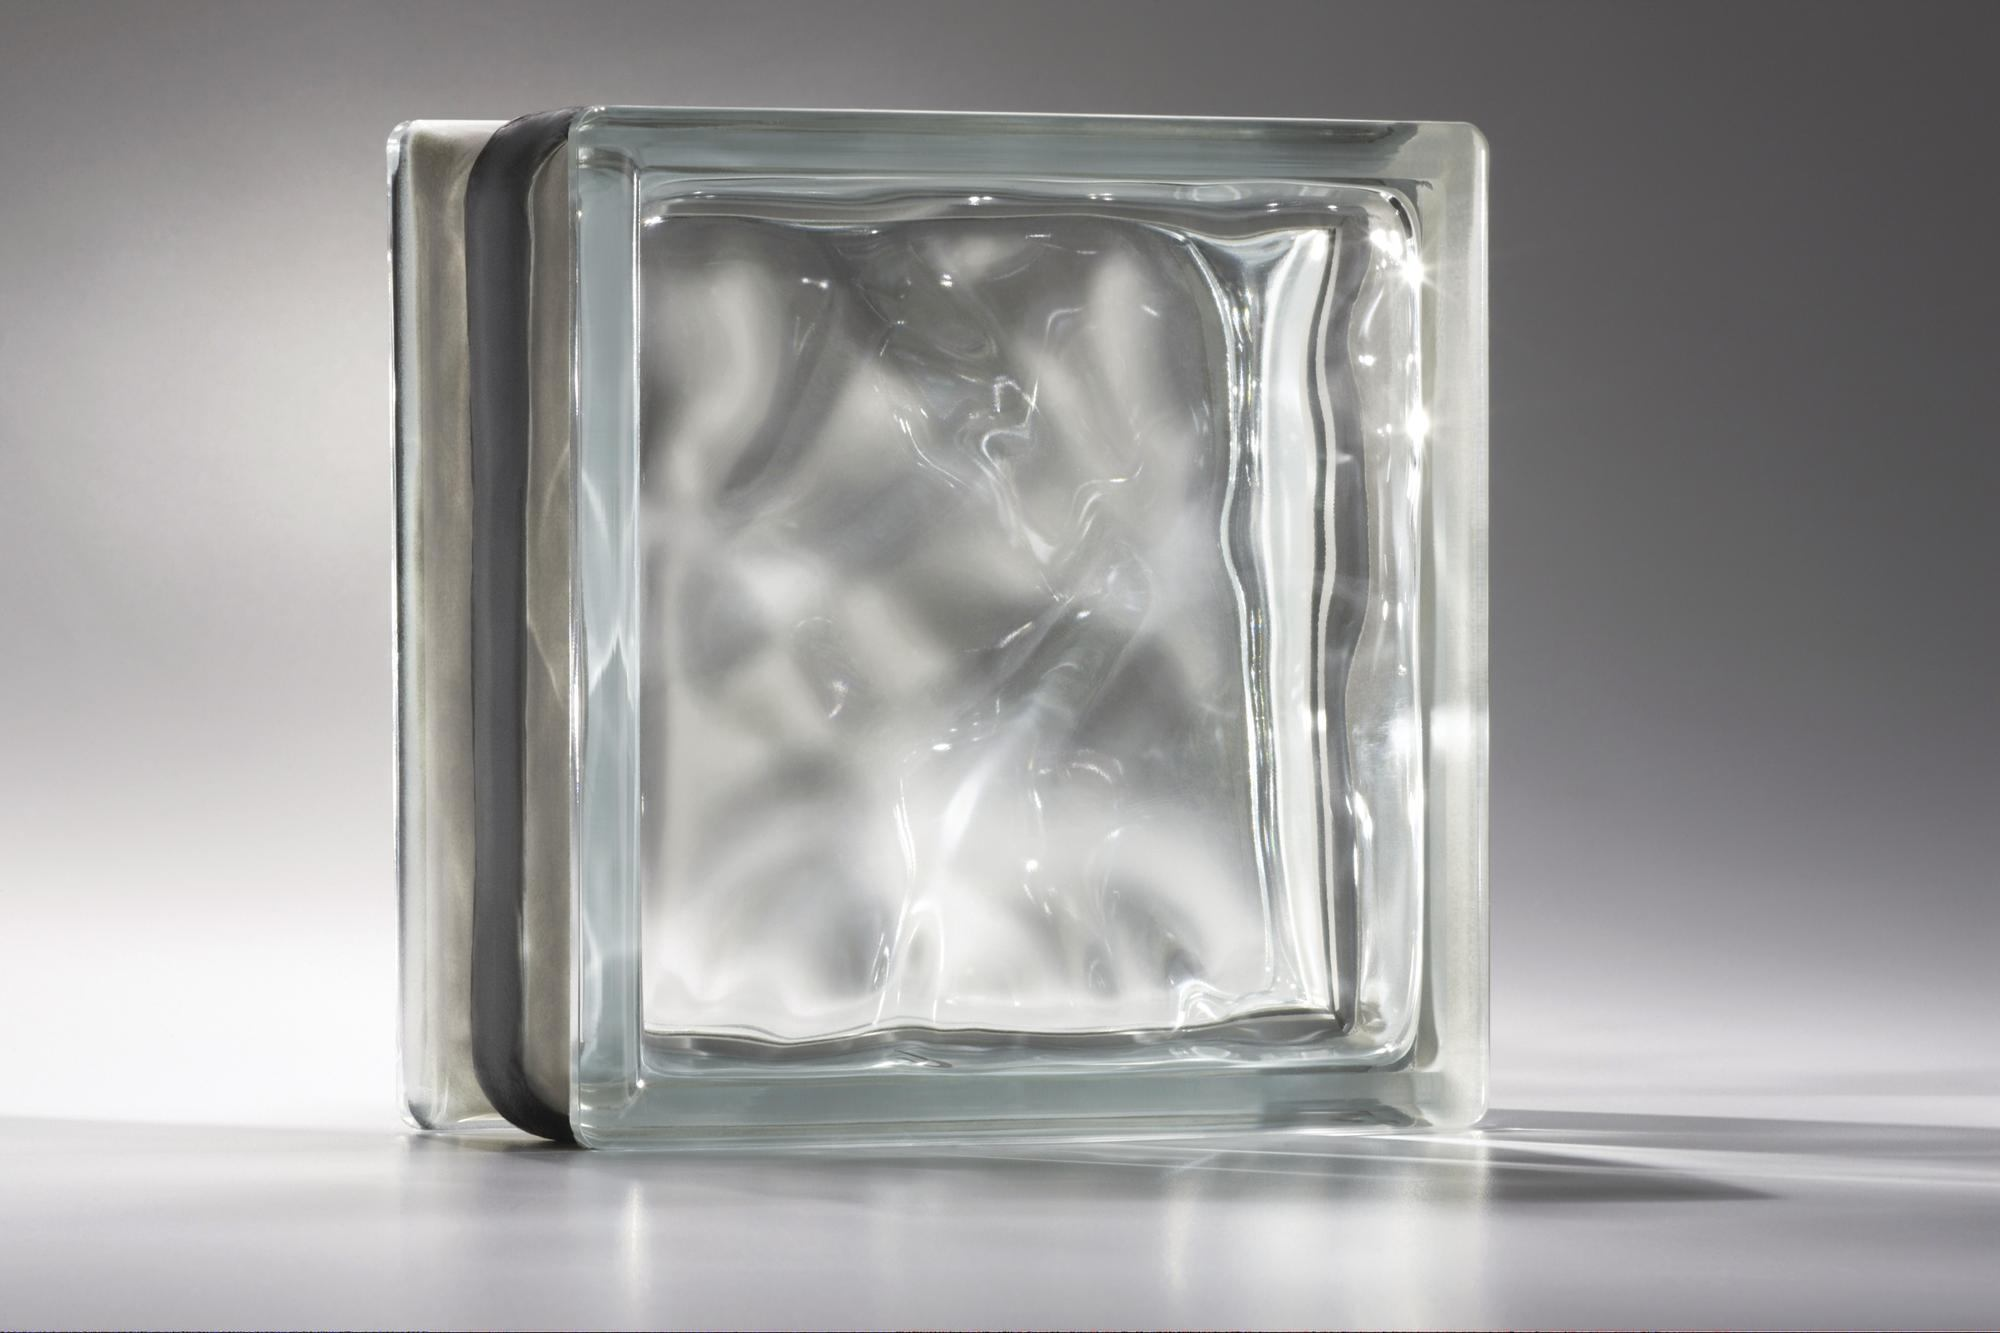 lightwise glass block panels from pittsburgh corning